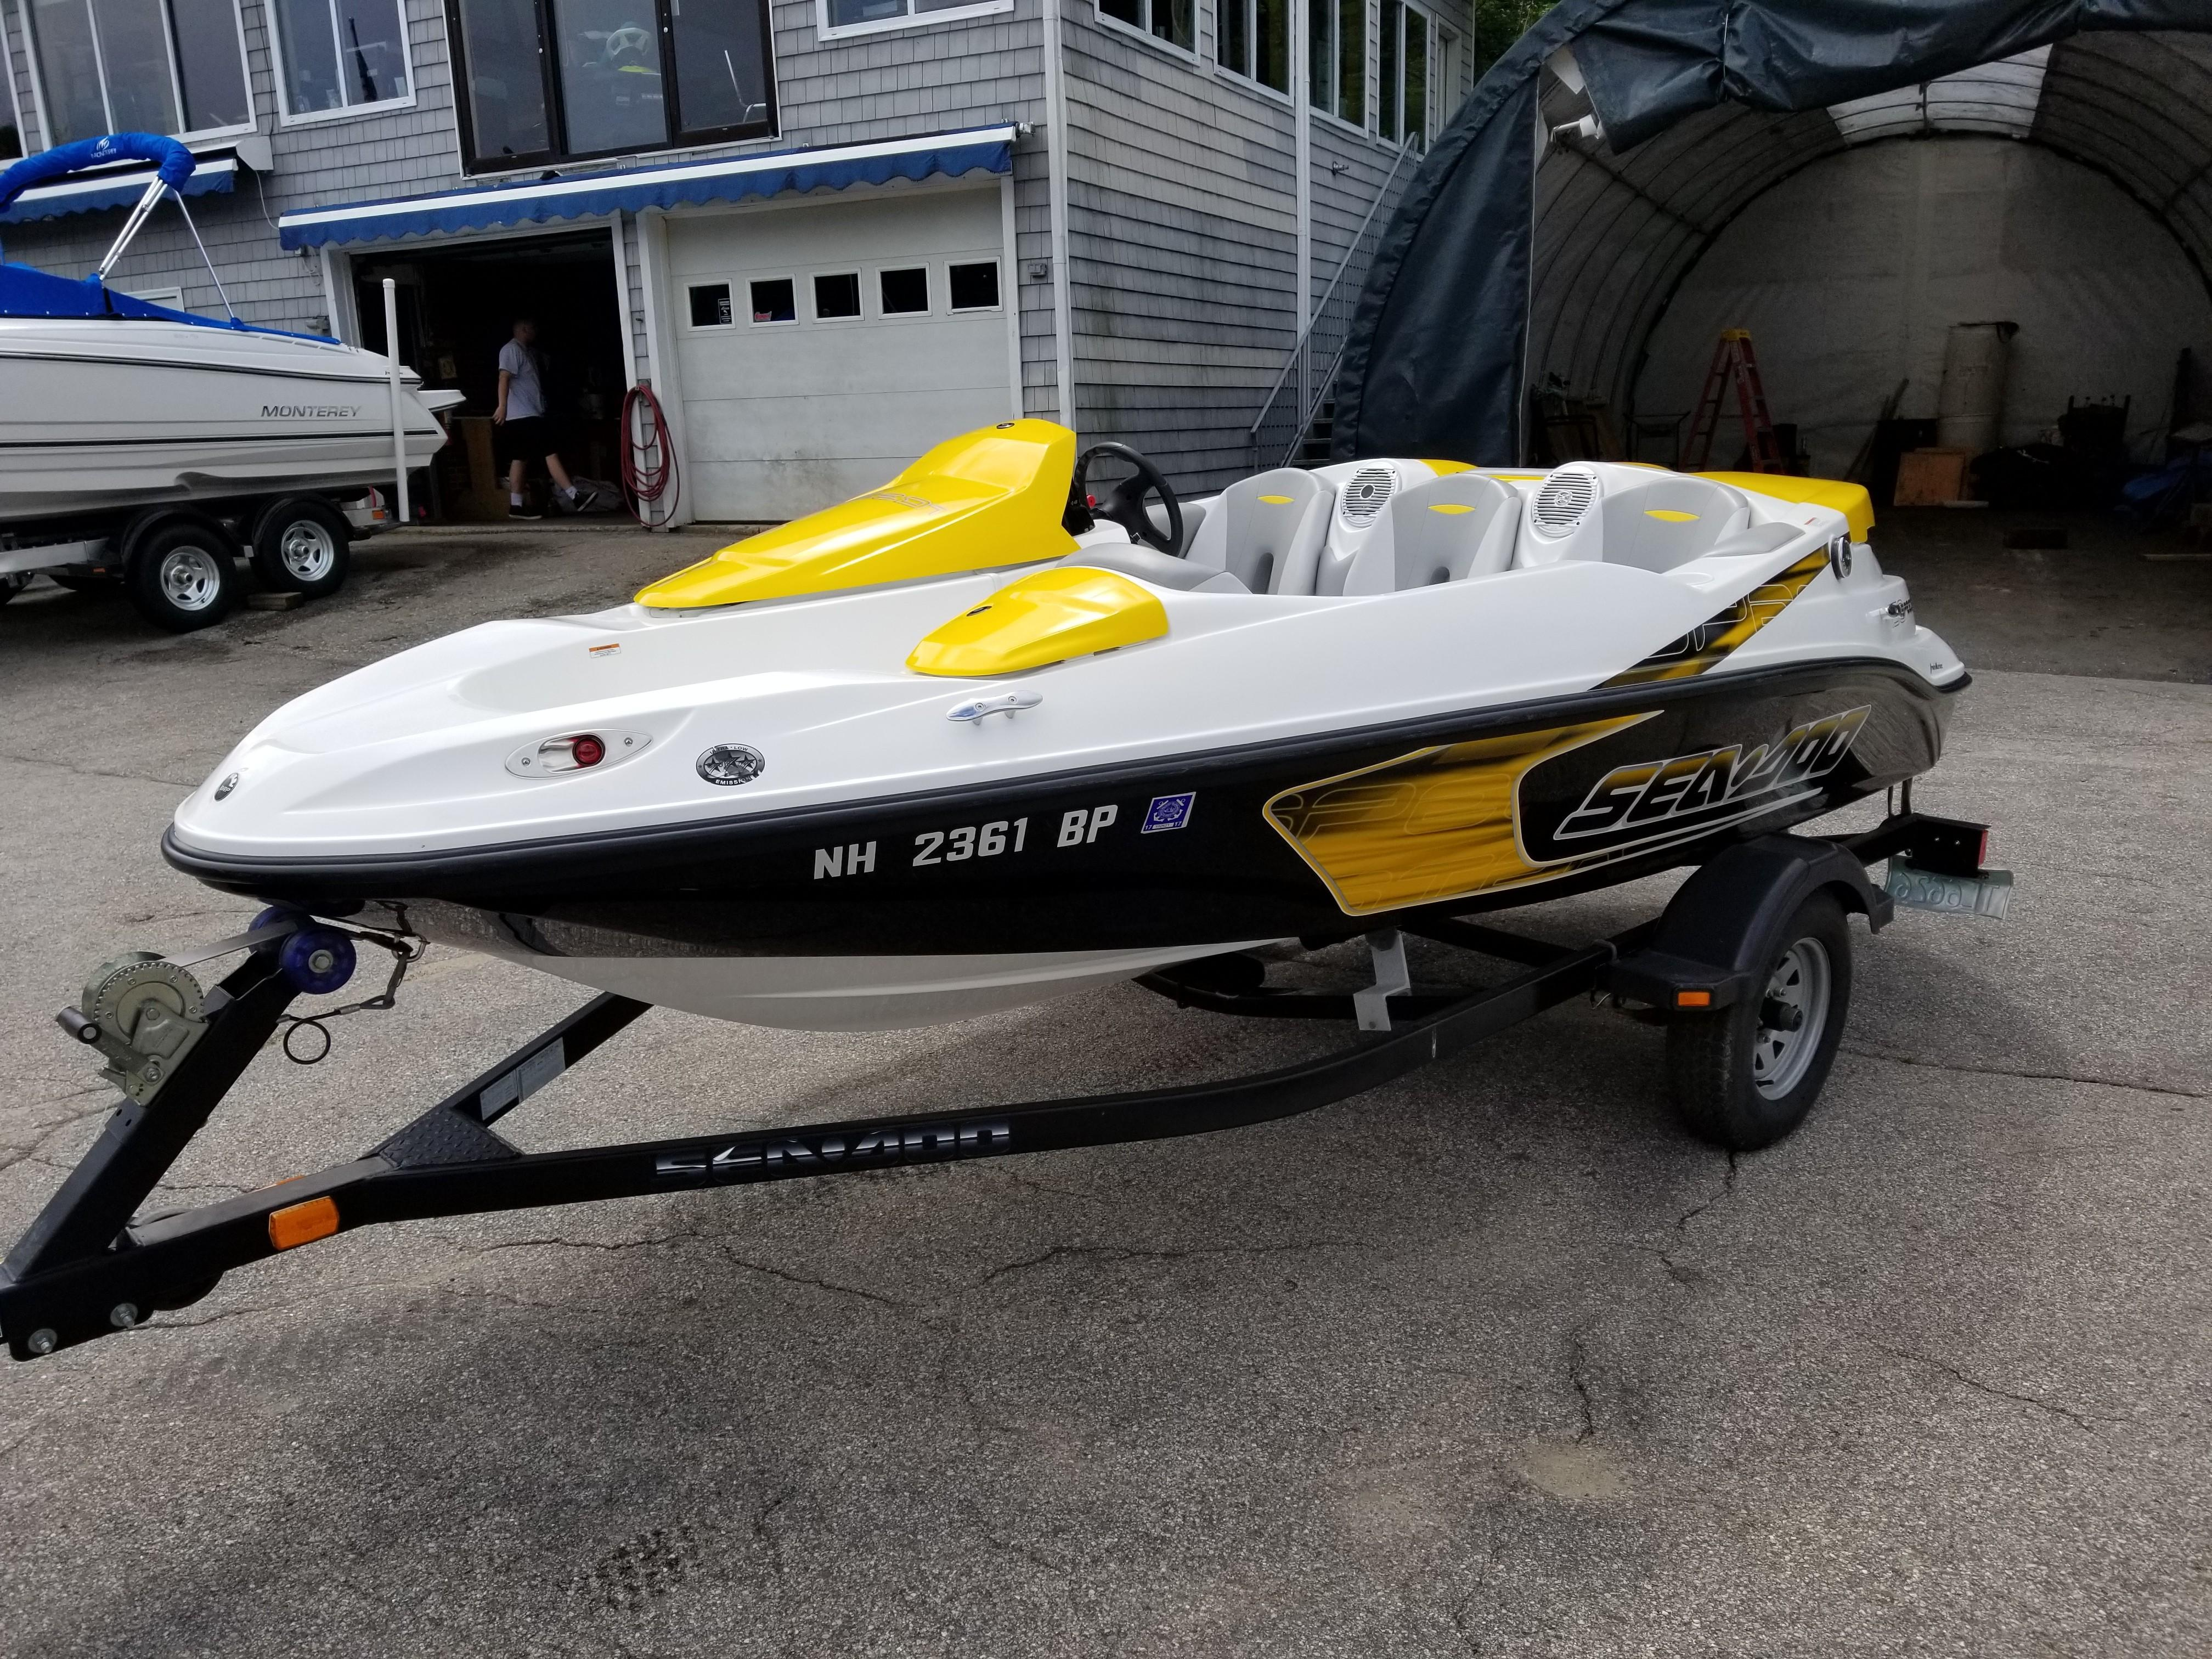 2009 Sea Doo Sportboat boat for sale, model of the boat is 150 Speedster & Image # 1 of 16